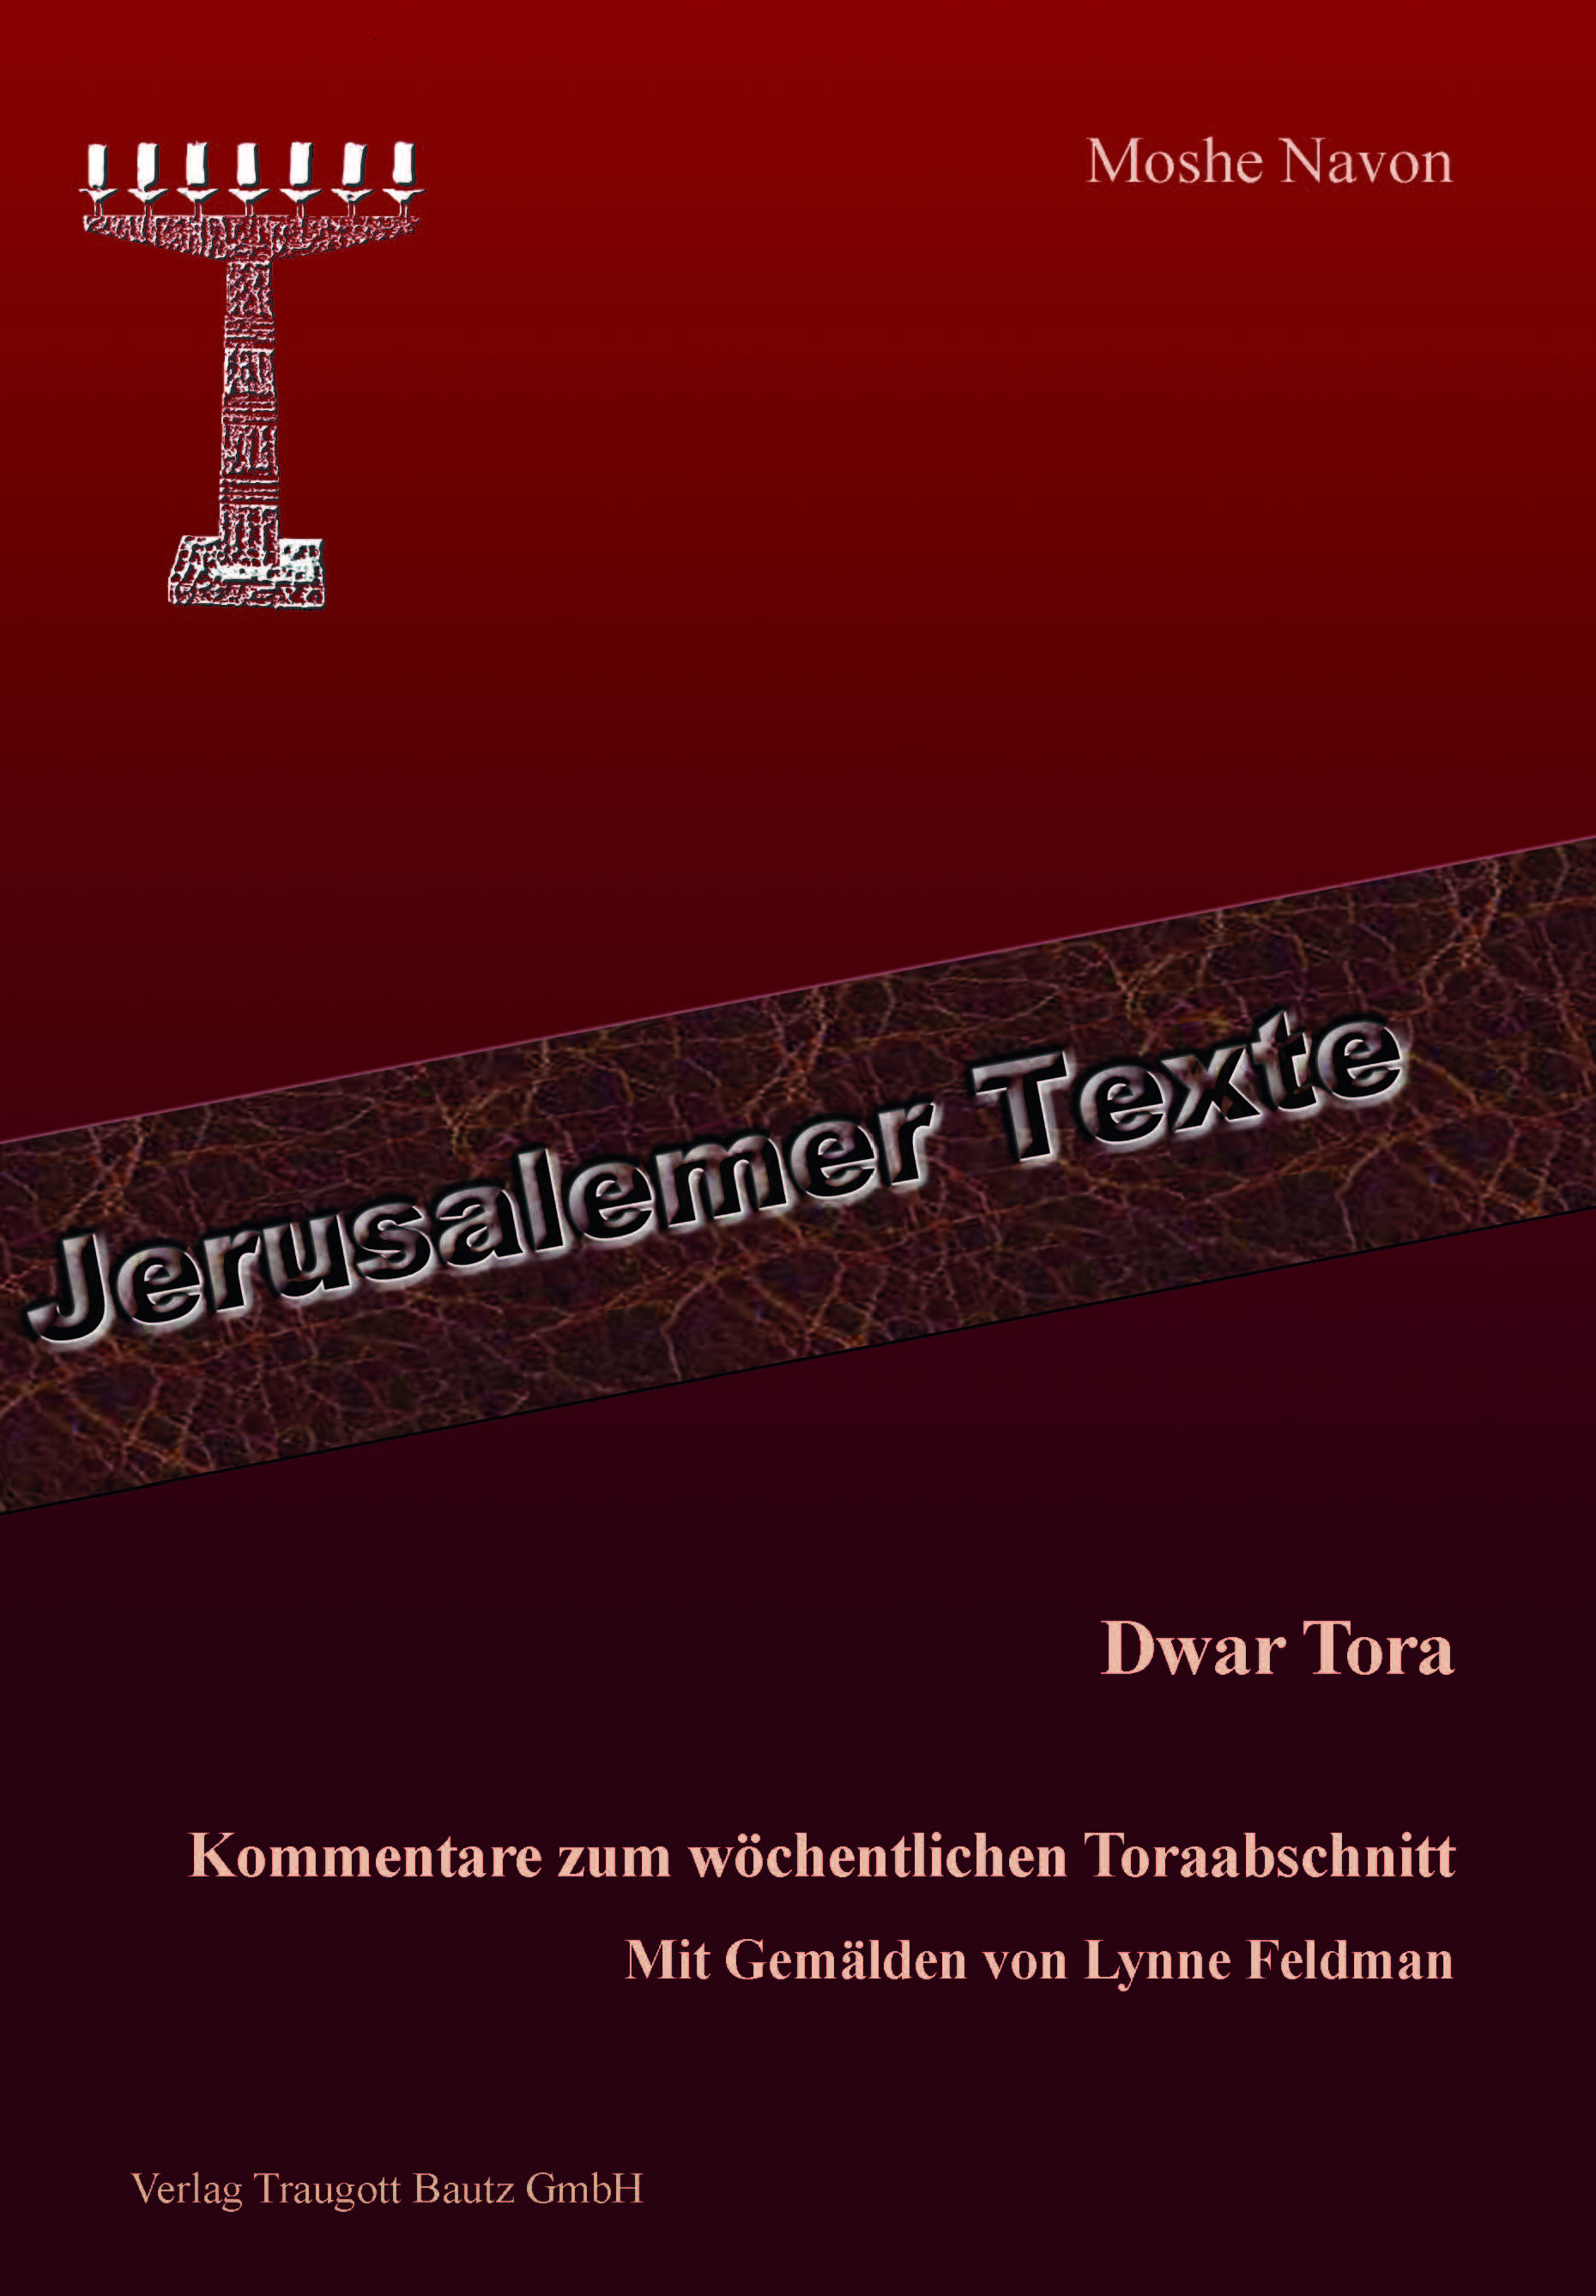 jerusalem texte band22